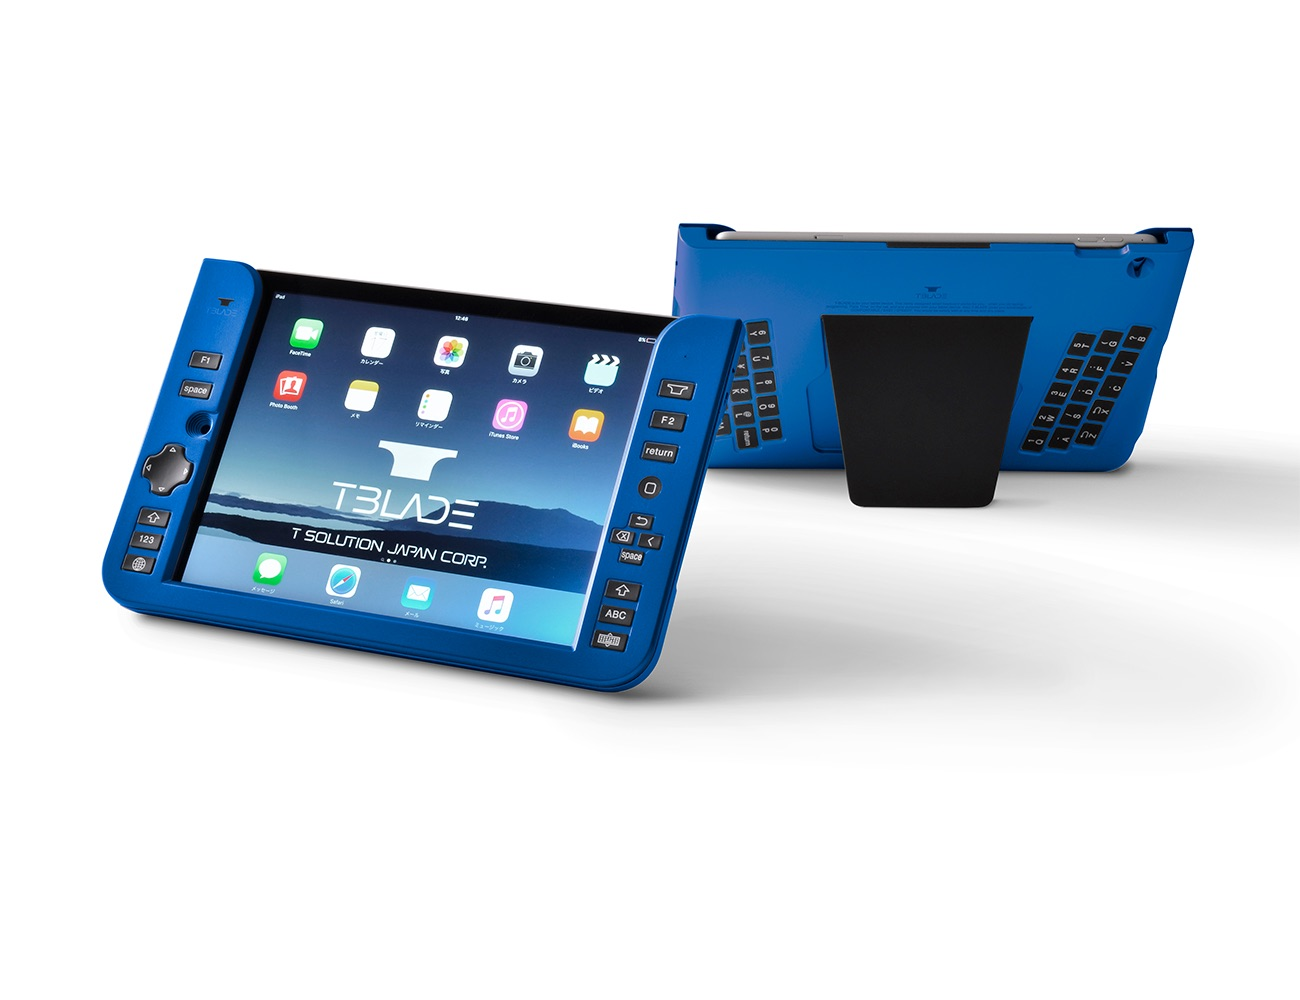 T-BLADE – World's 1st Back-typing Keyboard for iPad